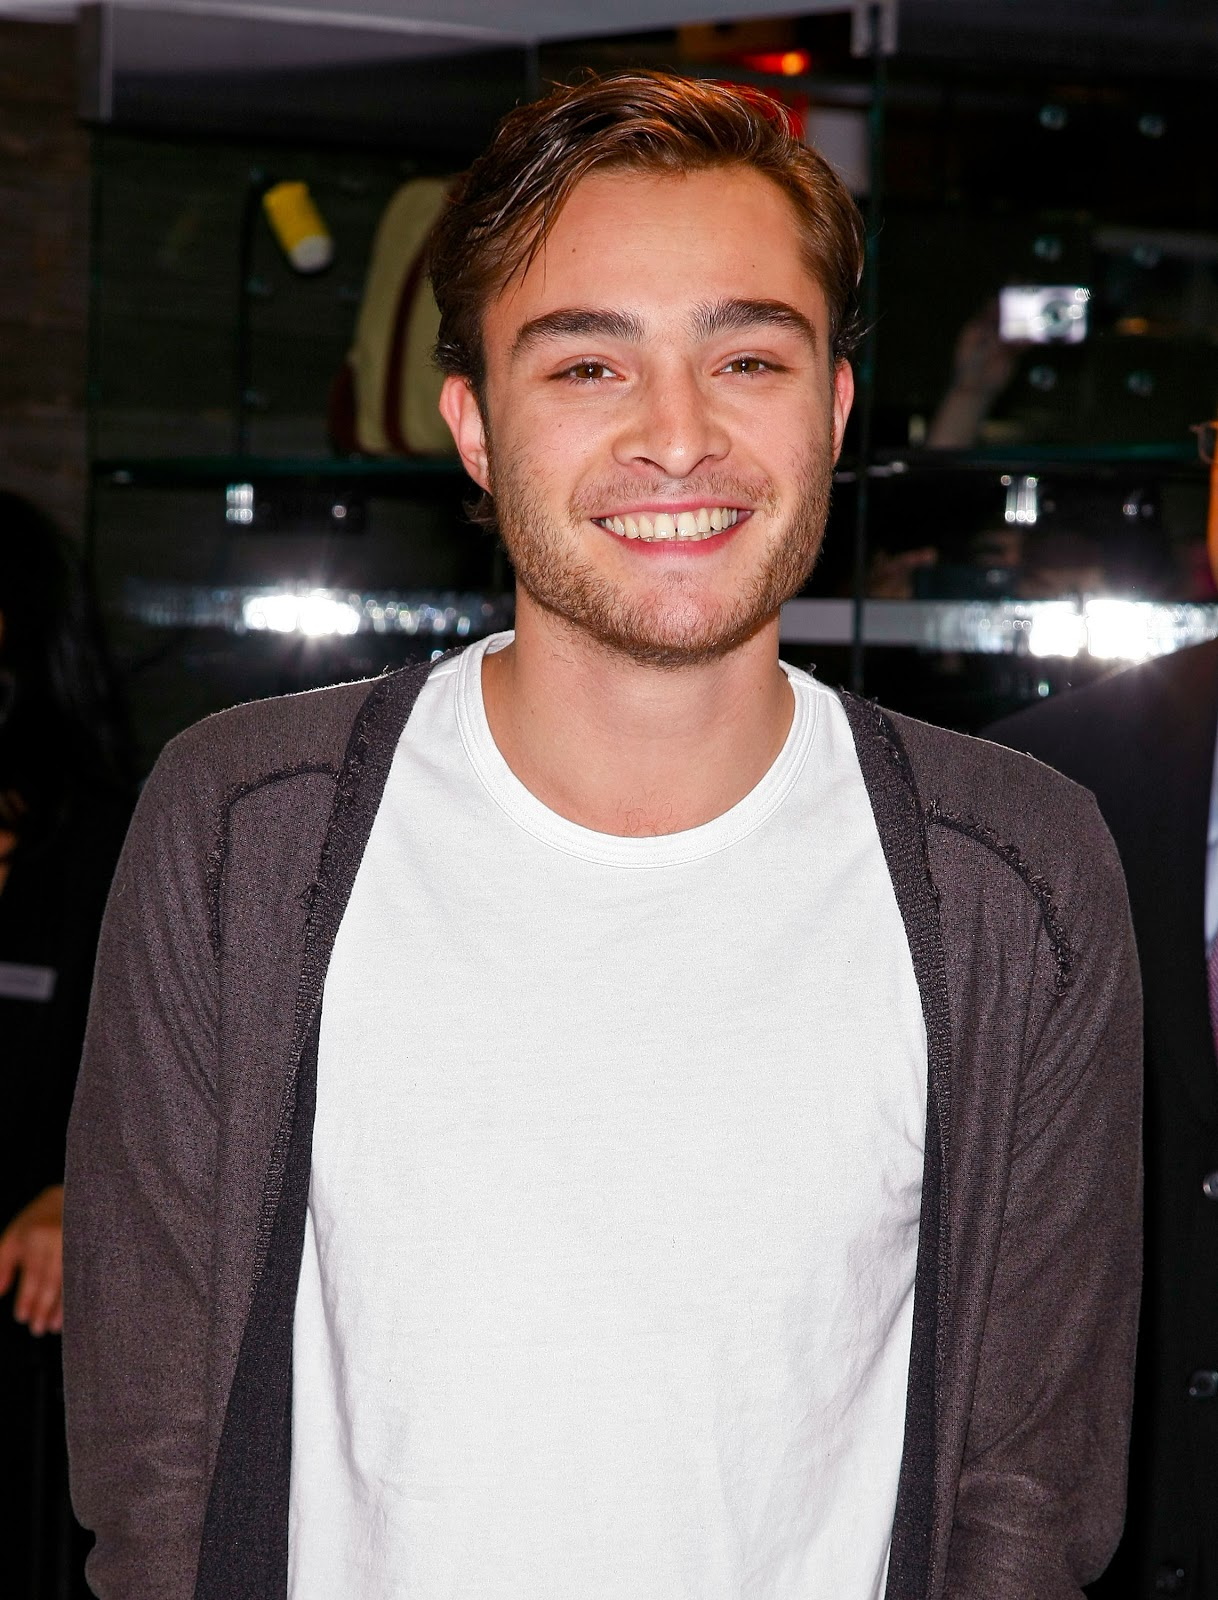 chuck bass smiling - photo #15